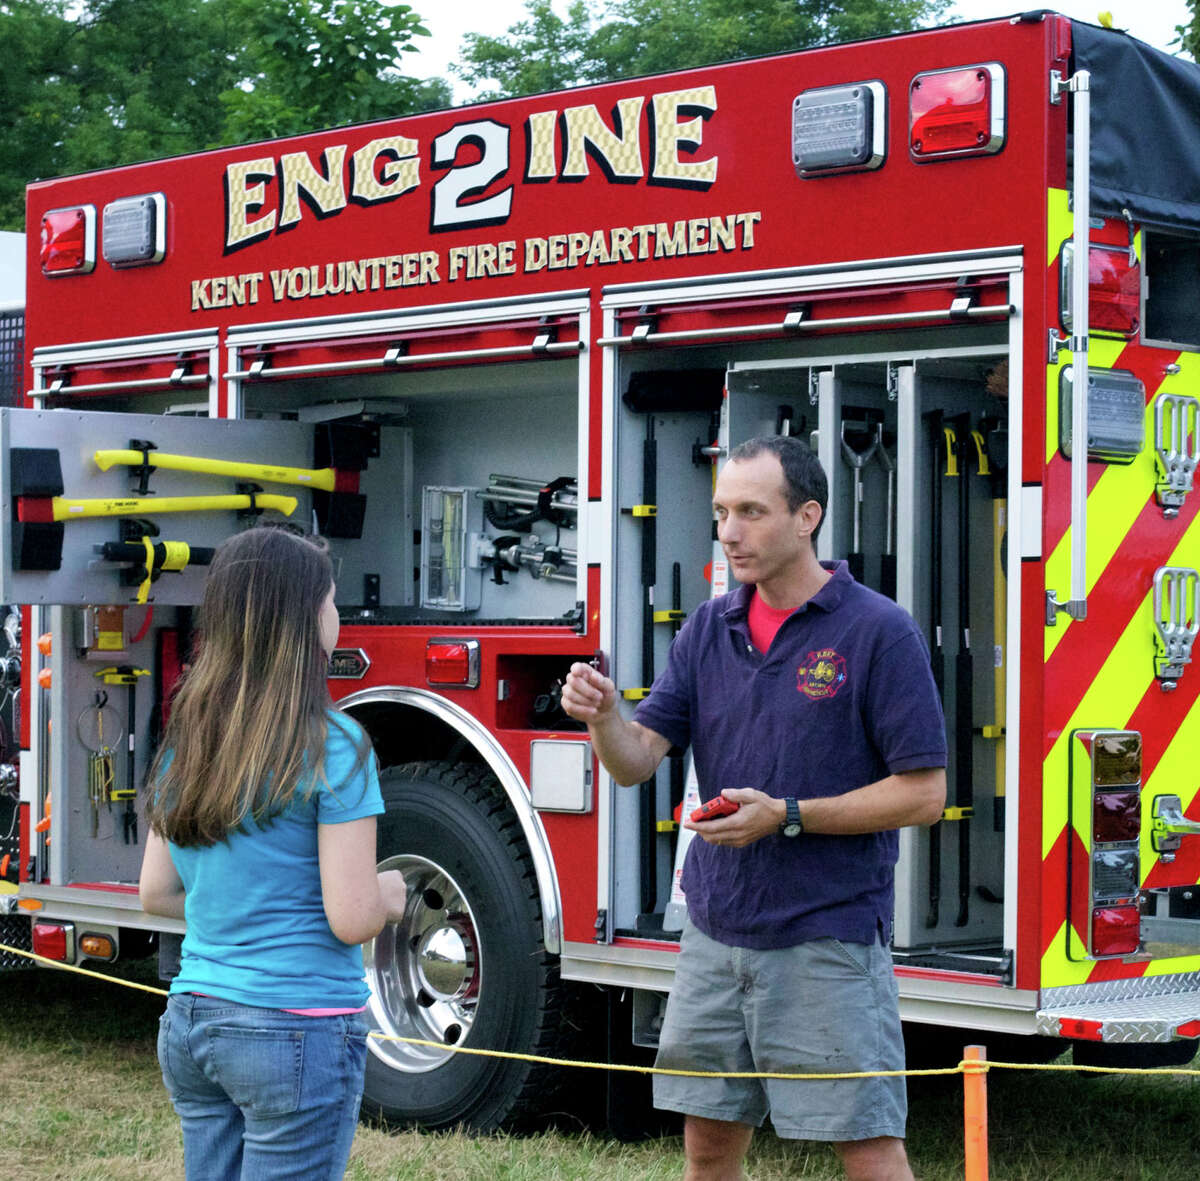 John Russell of the Kent Volunteer Fire Departmentfields questions from Jennifer Petrone, 14, of Kent during the Kent Firemen's Fair and Parade, Aug. 23-25, 2012.